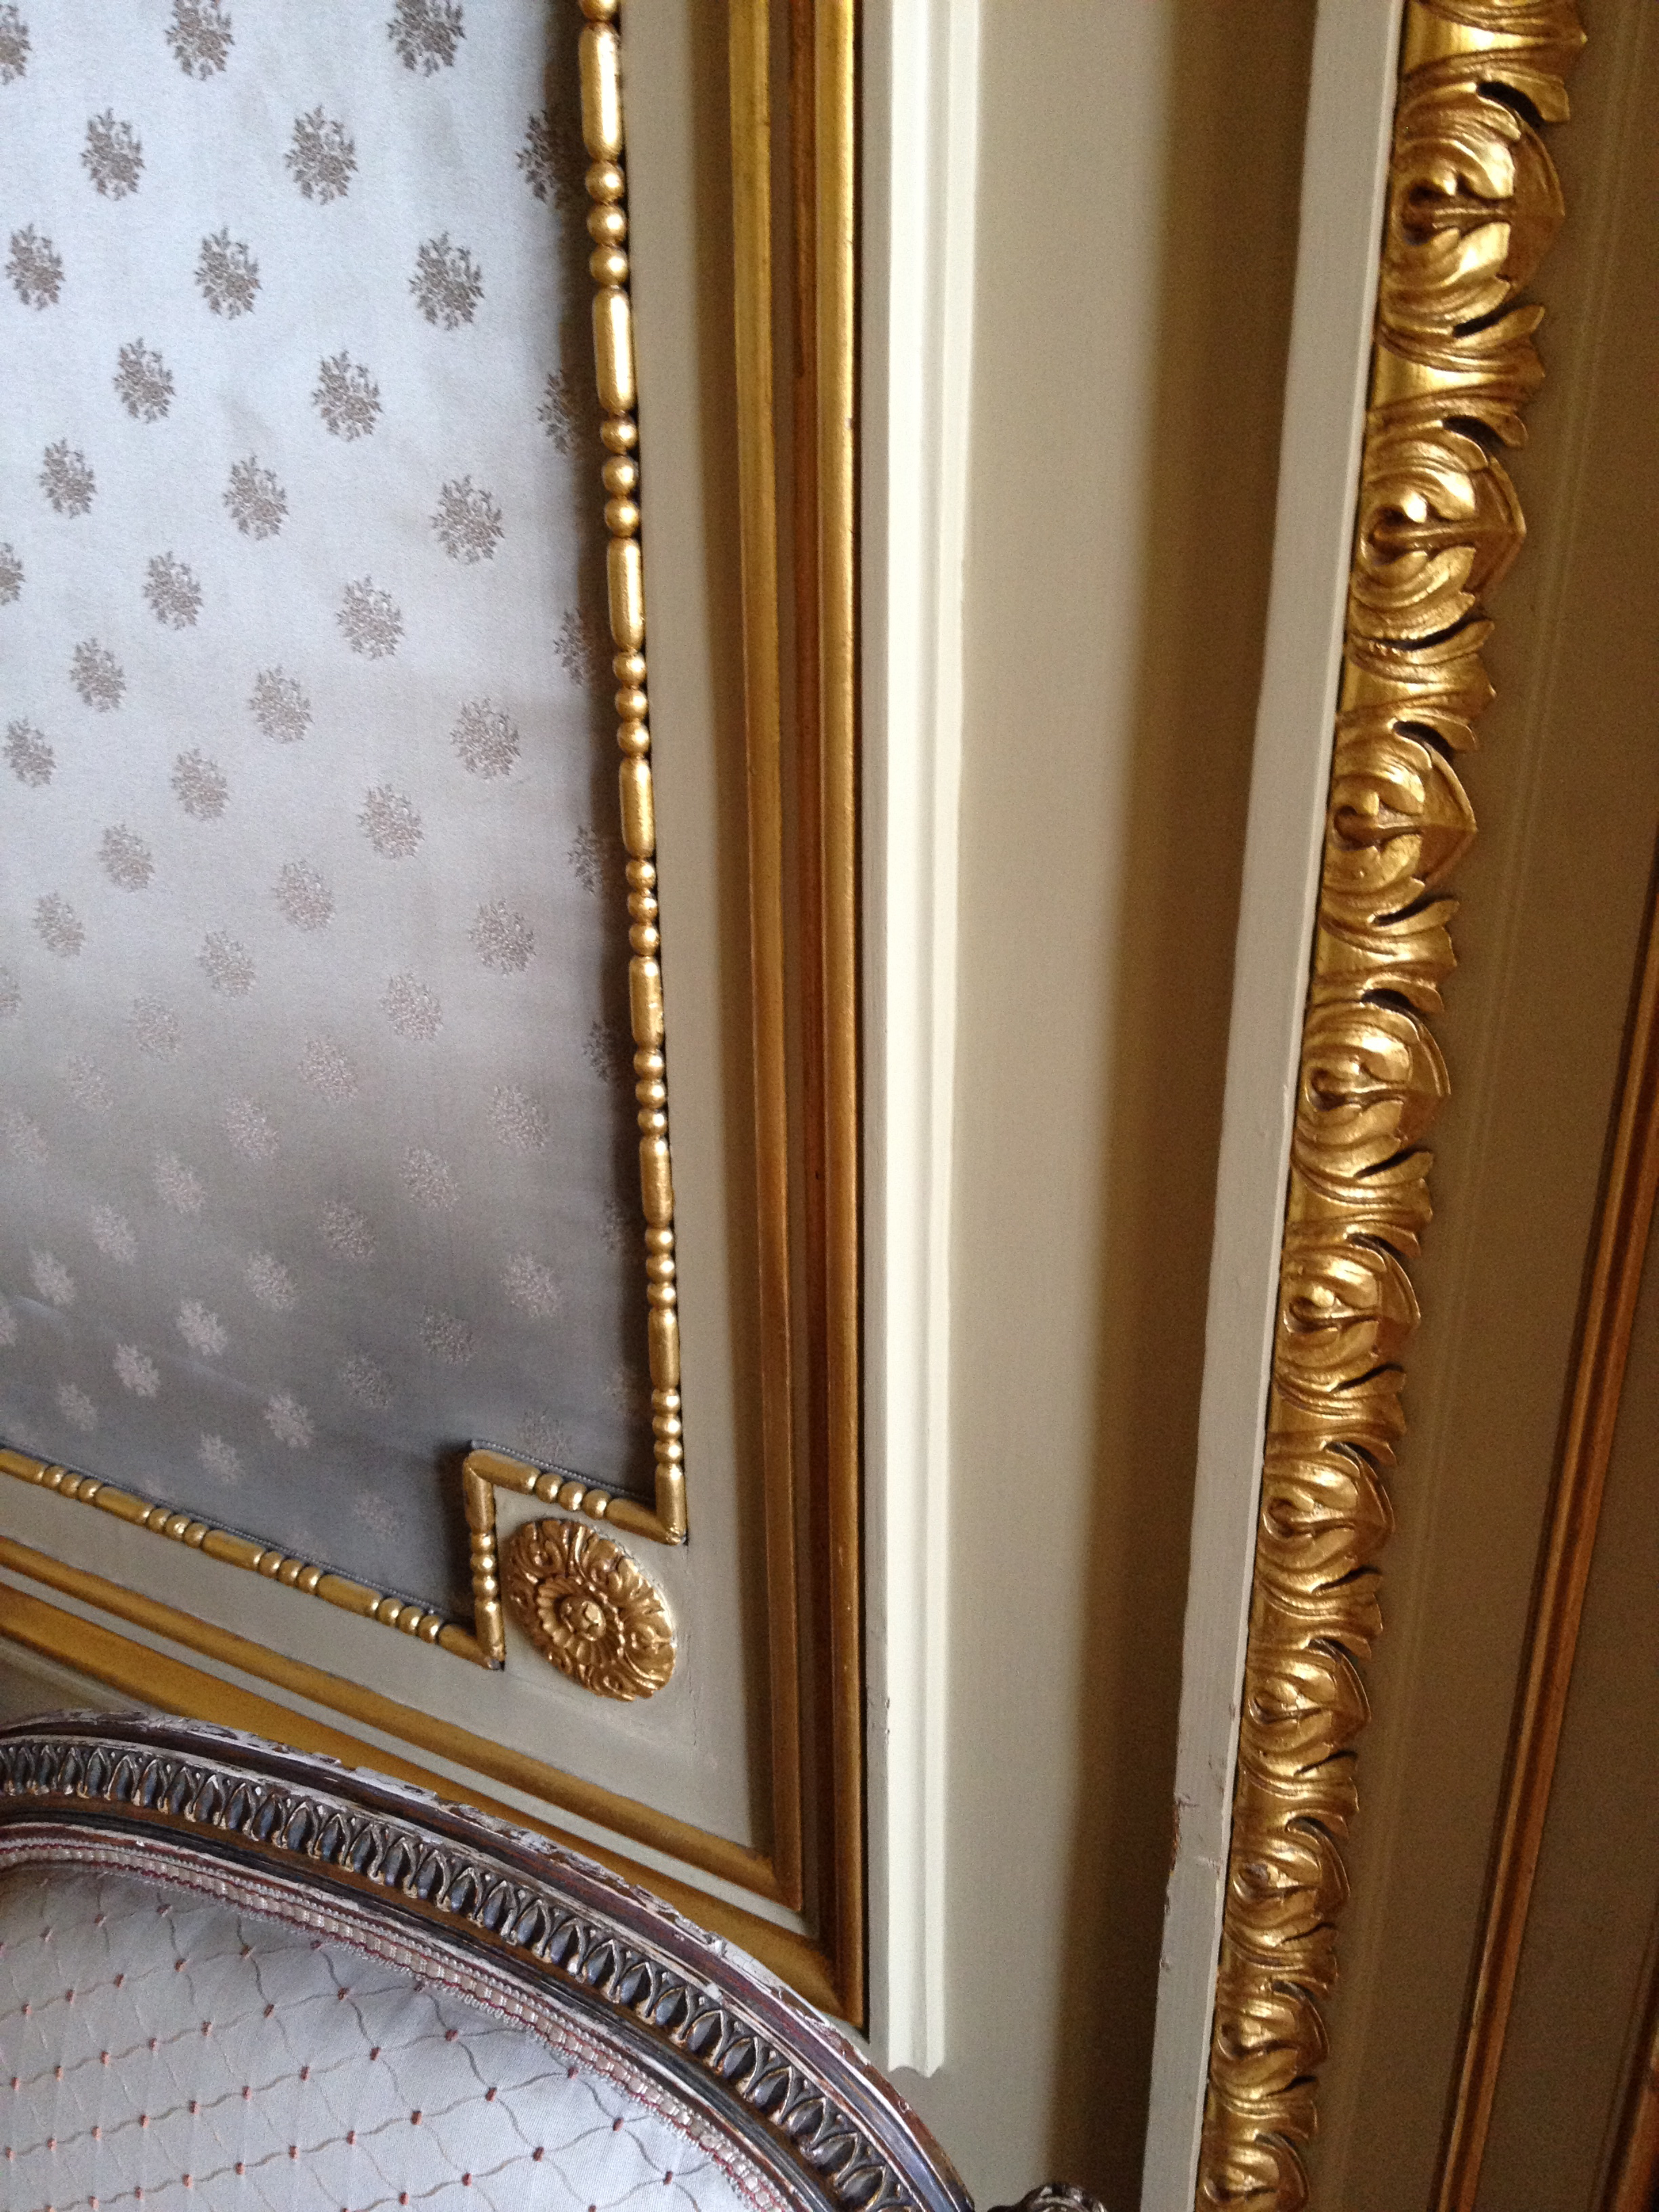 Just look at that Wall Panelling Detail!